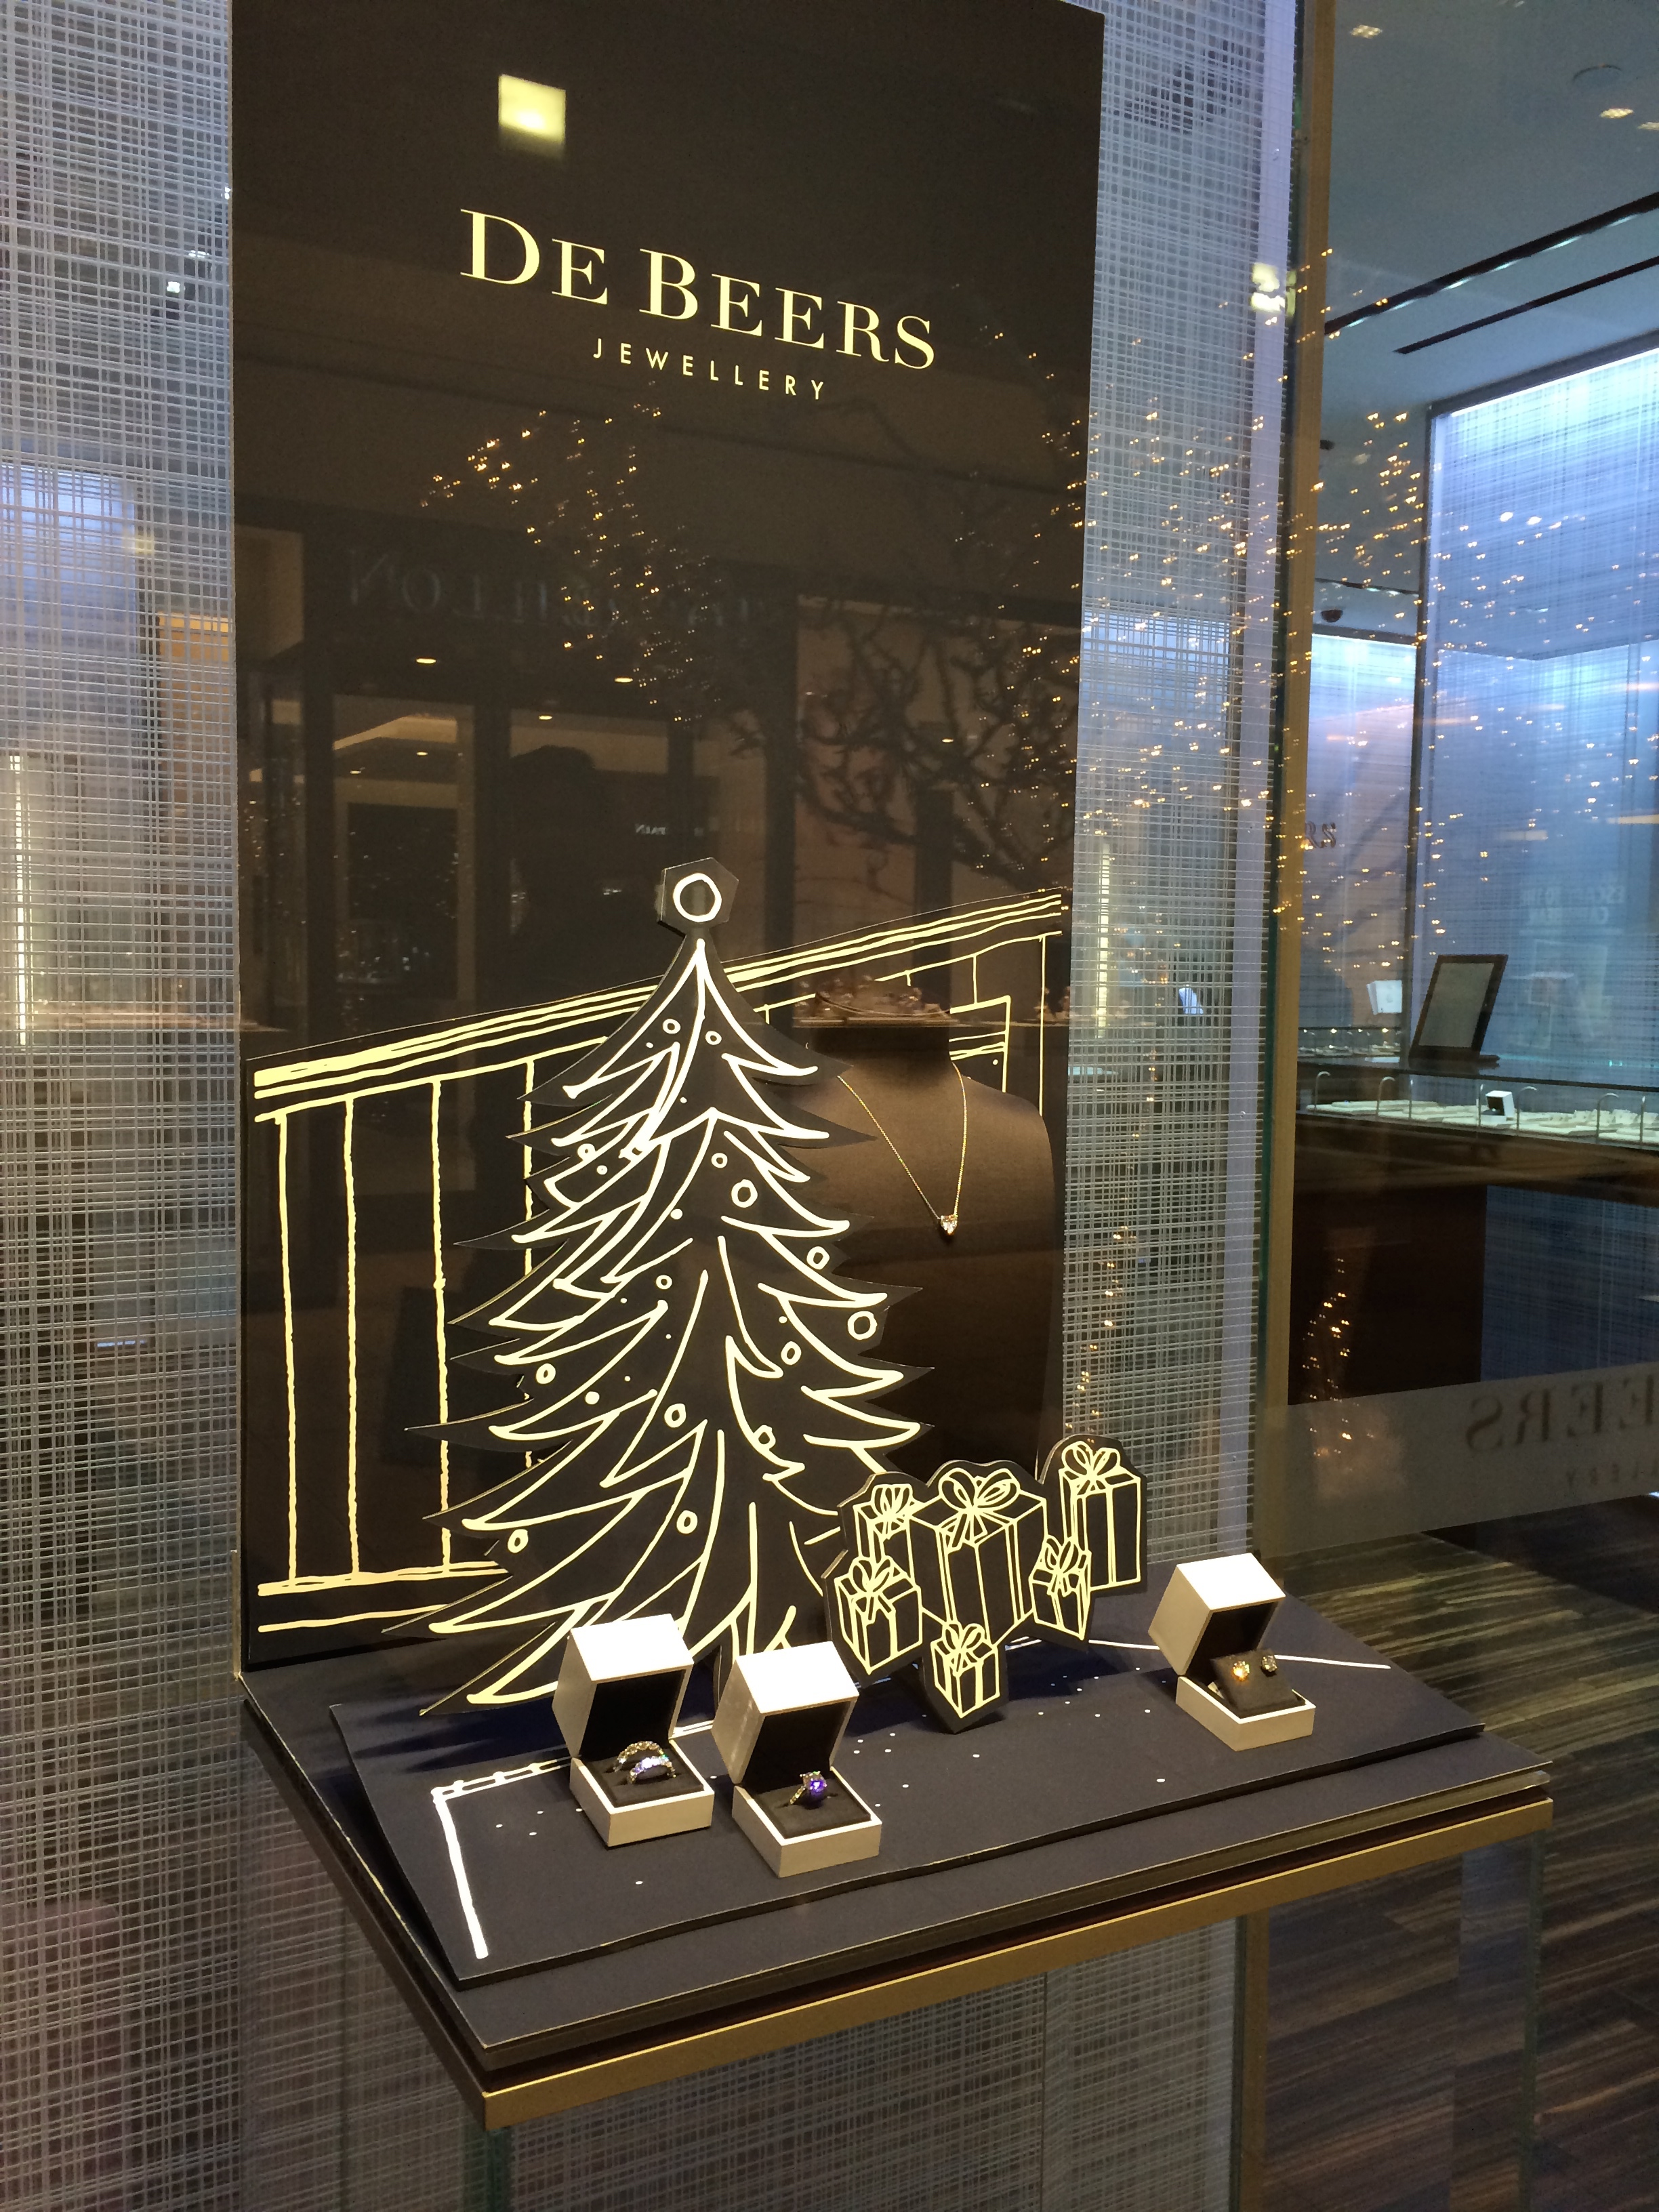 More jewelry display ideas for the holiday season with a simple illustration of a Christmas tree and presents around it, bu De Beers.